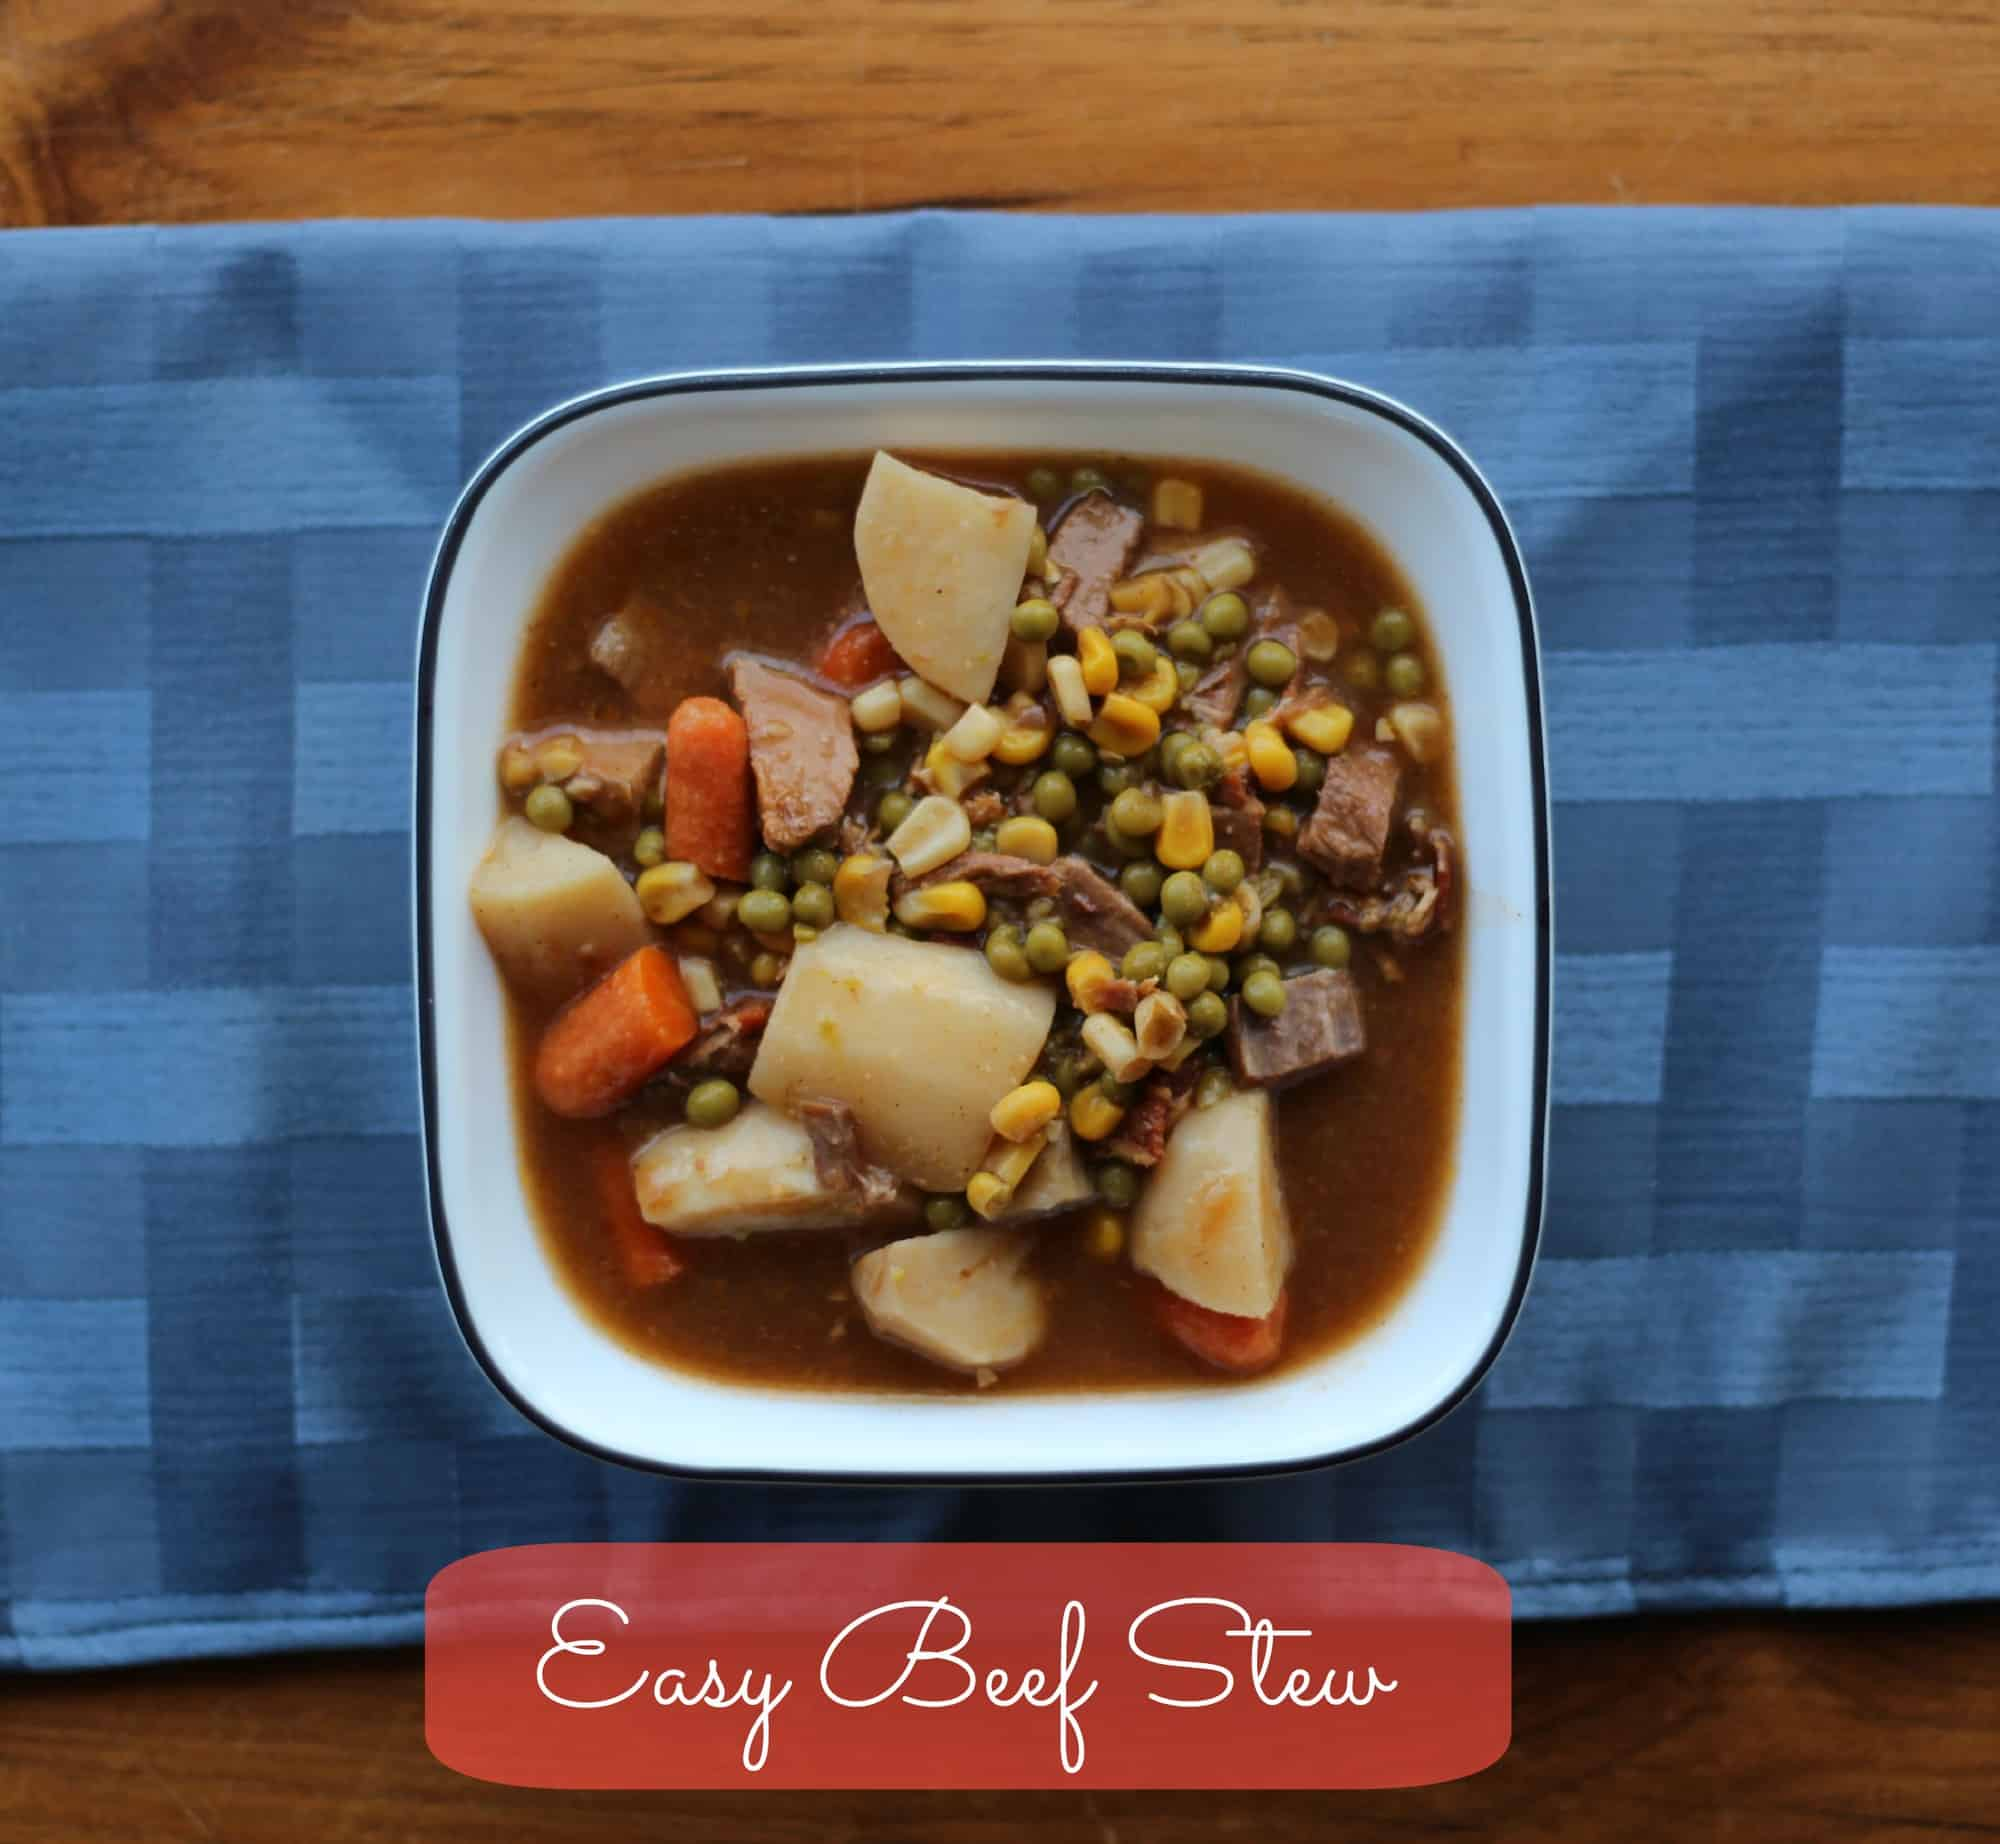 Easy Beef Stew Recipe slow cooker